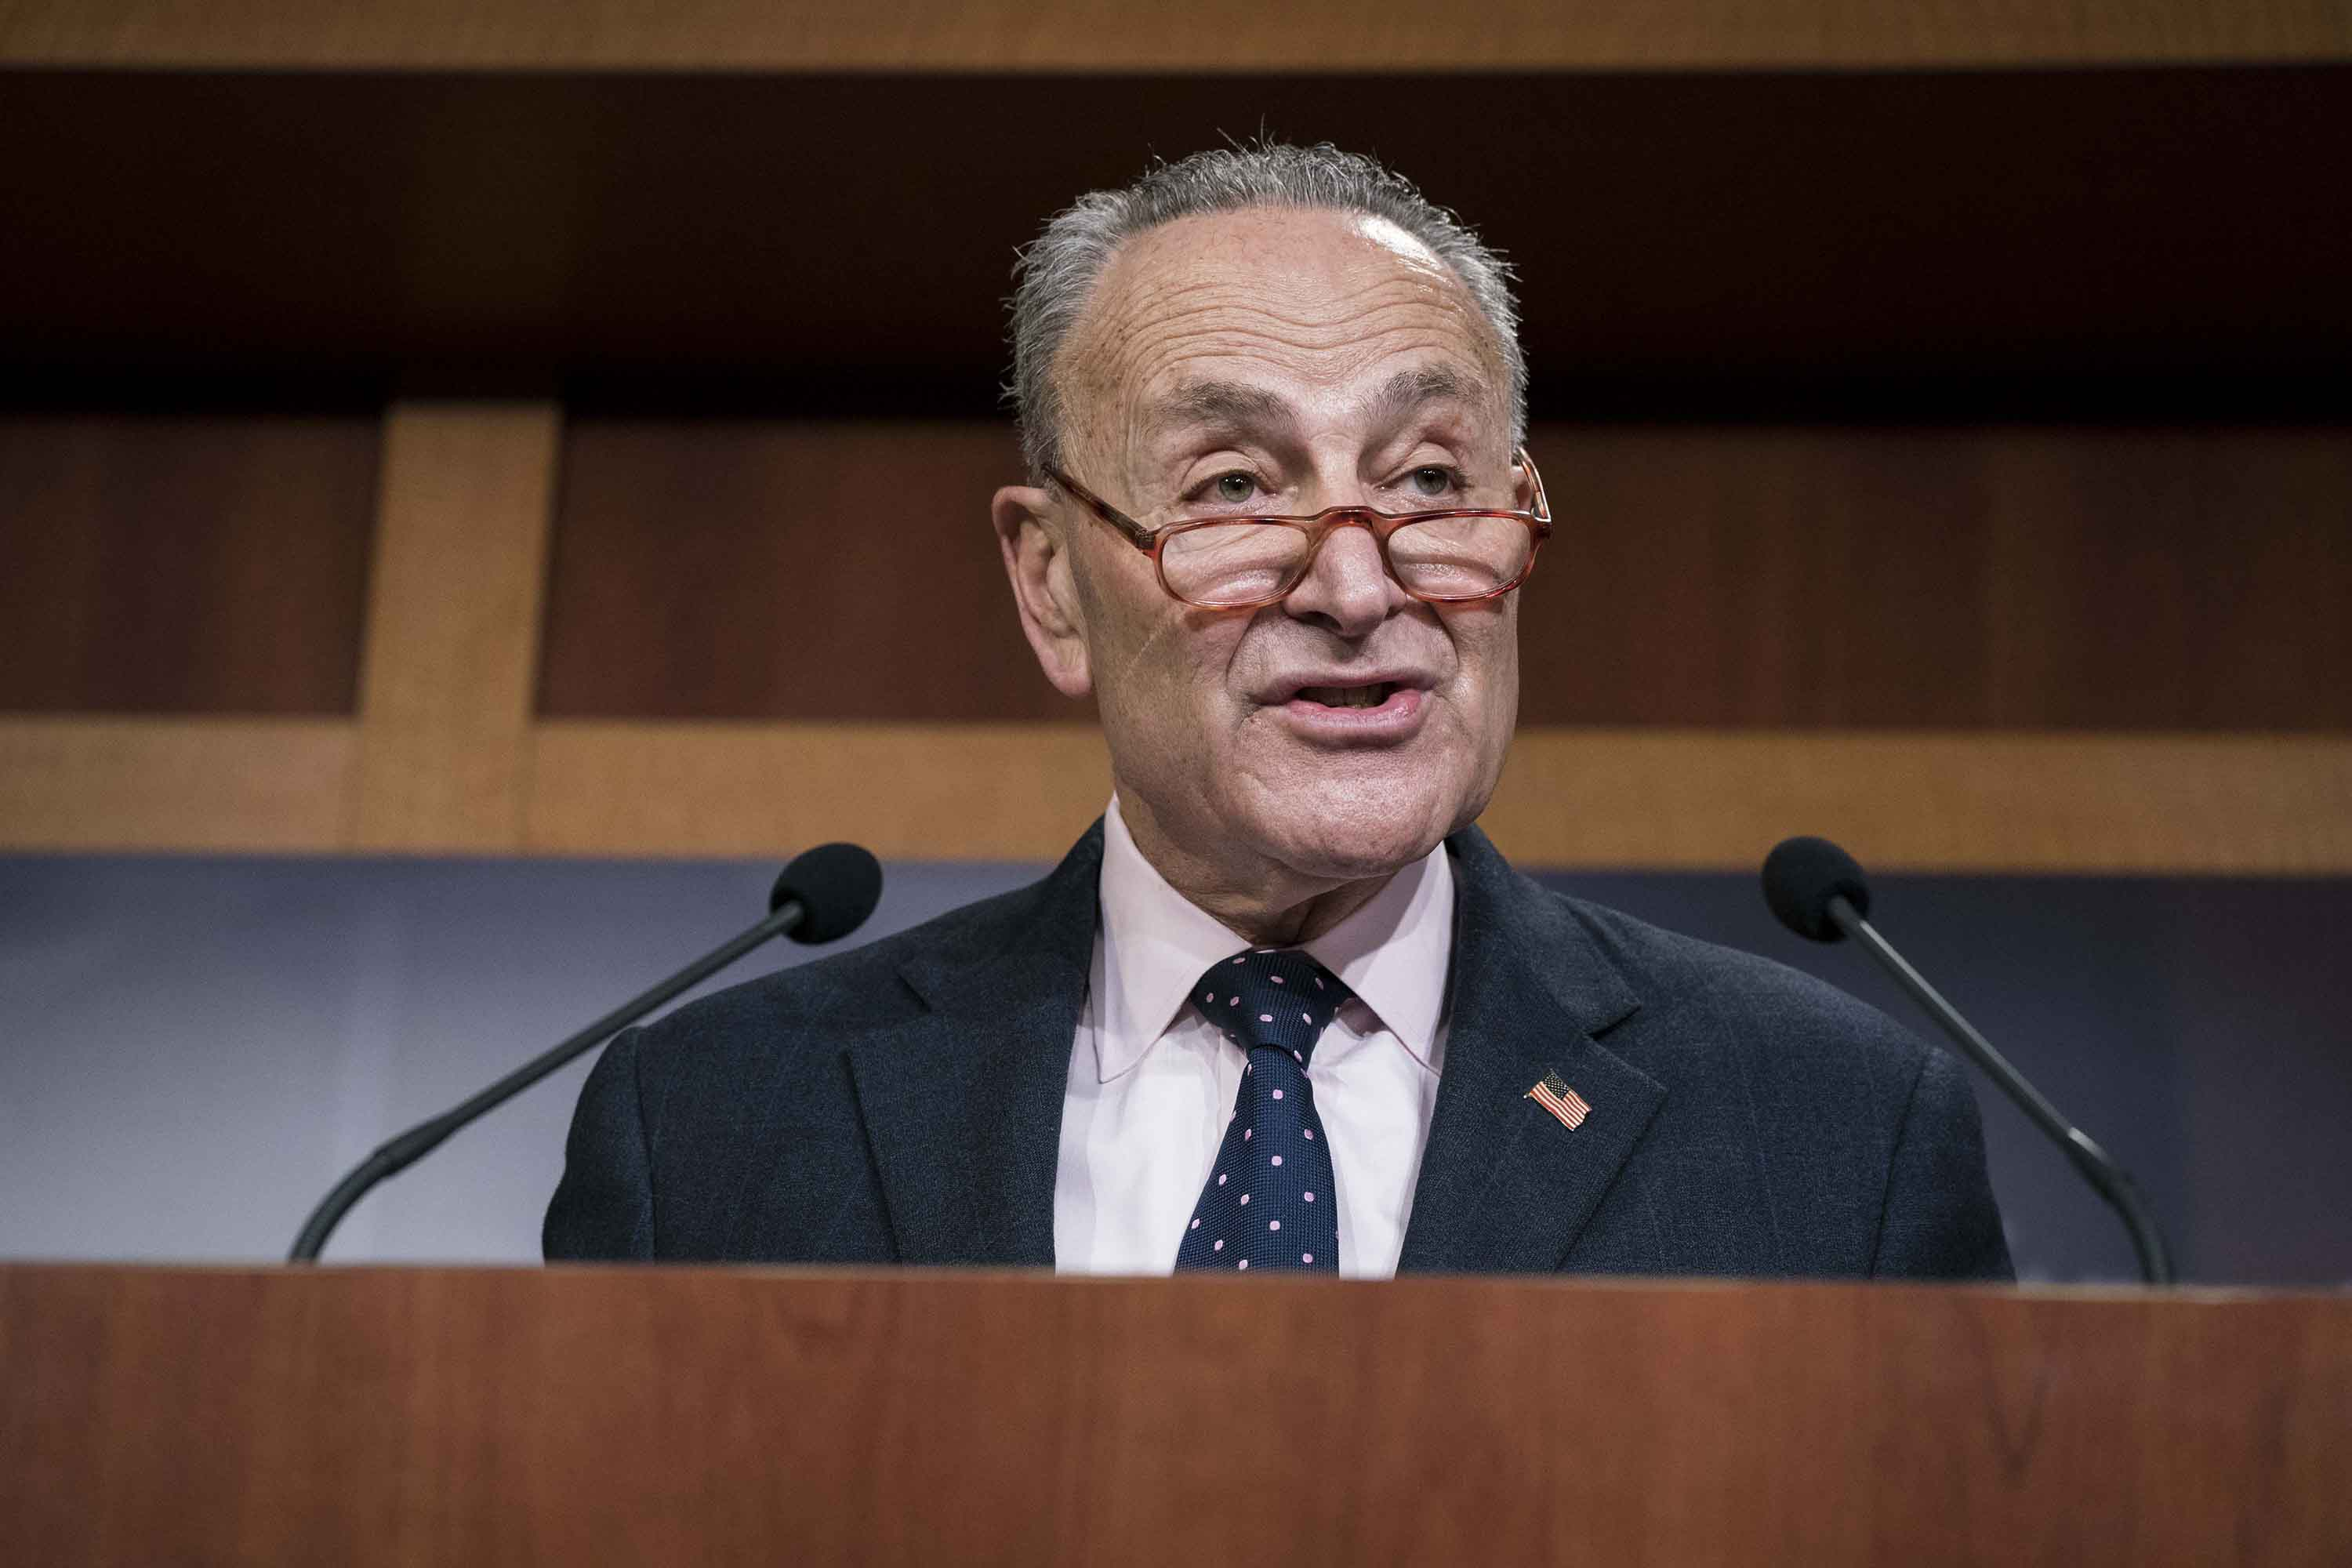 Sen. Chuck Schumer speaks during a news conference in Washington, DC on February 13.